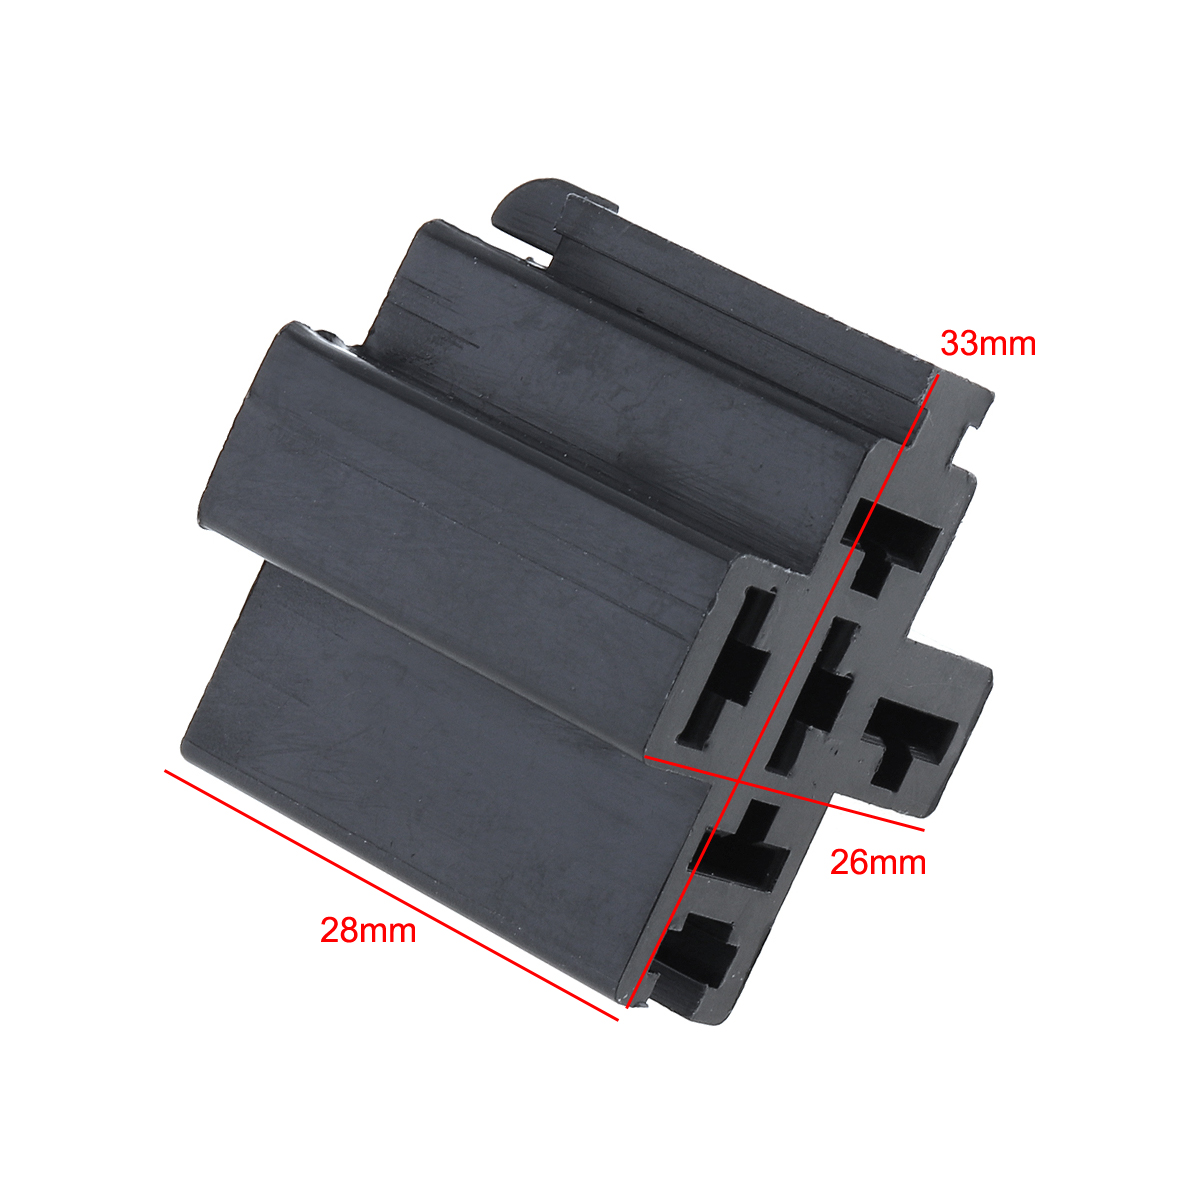 6-3mm-Car-Vehicle-5-Pin-Relay-Socket-Connector-Holder-with-5pcs-Copper-Terminal thumbnail 2